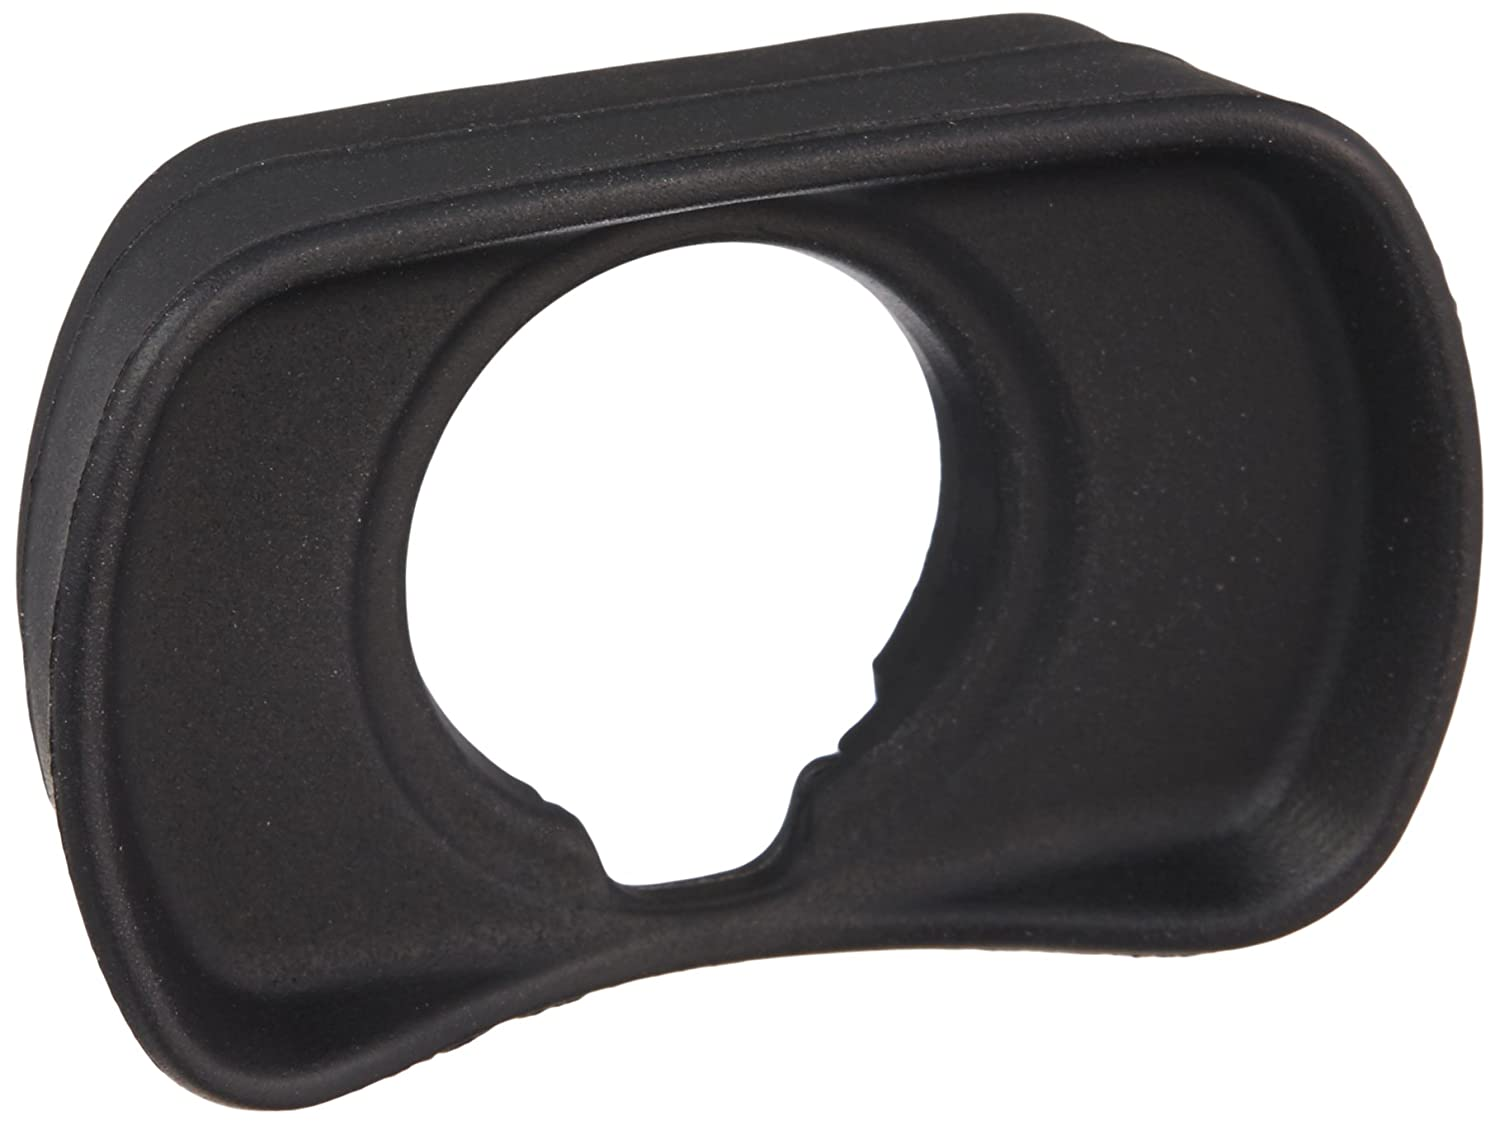 JJC EF-XTL Soft Durable Silicone Eyecup Viewfinder For Fujifilm X-T1 X-T2 Replaces EC-XT L EFXTL